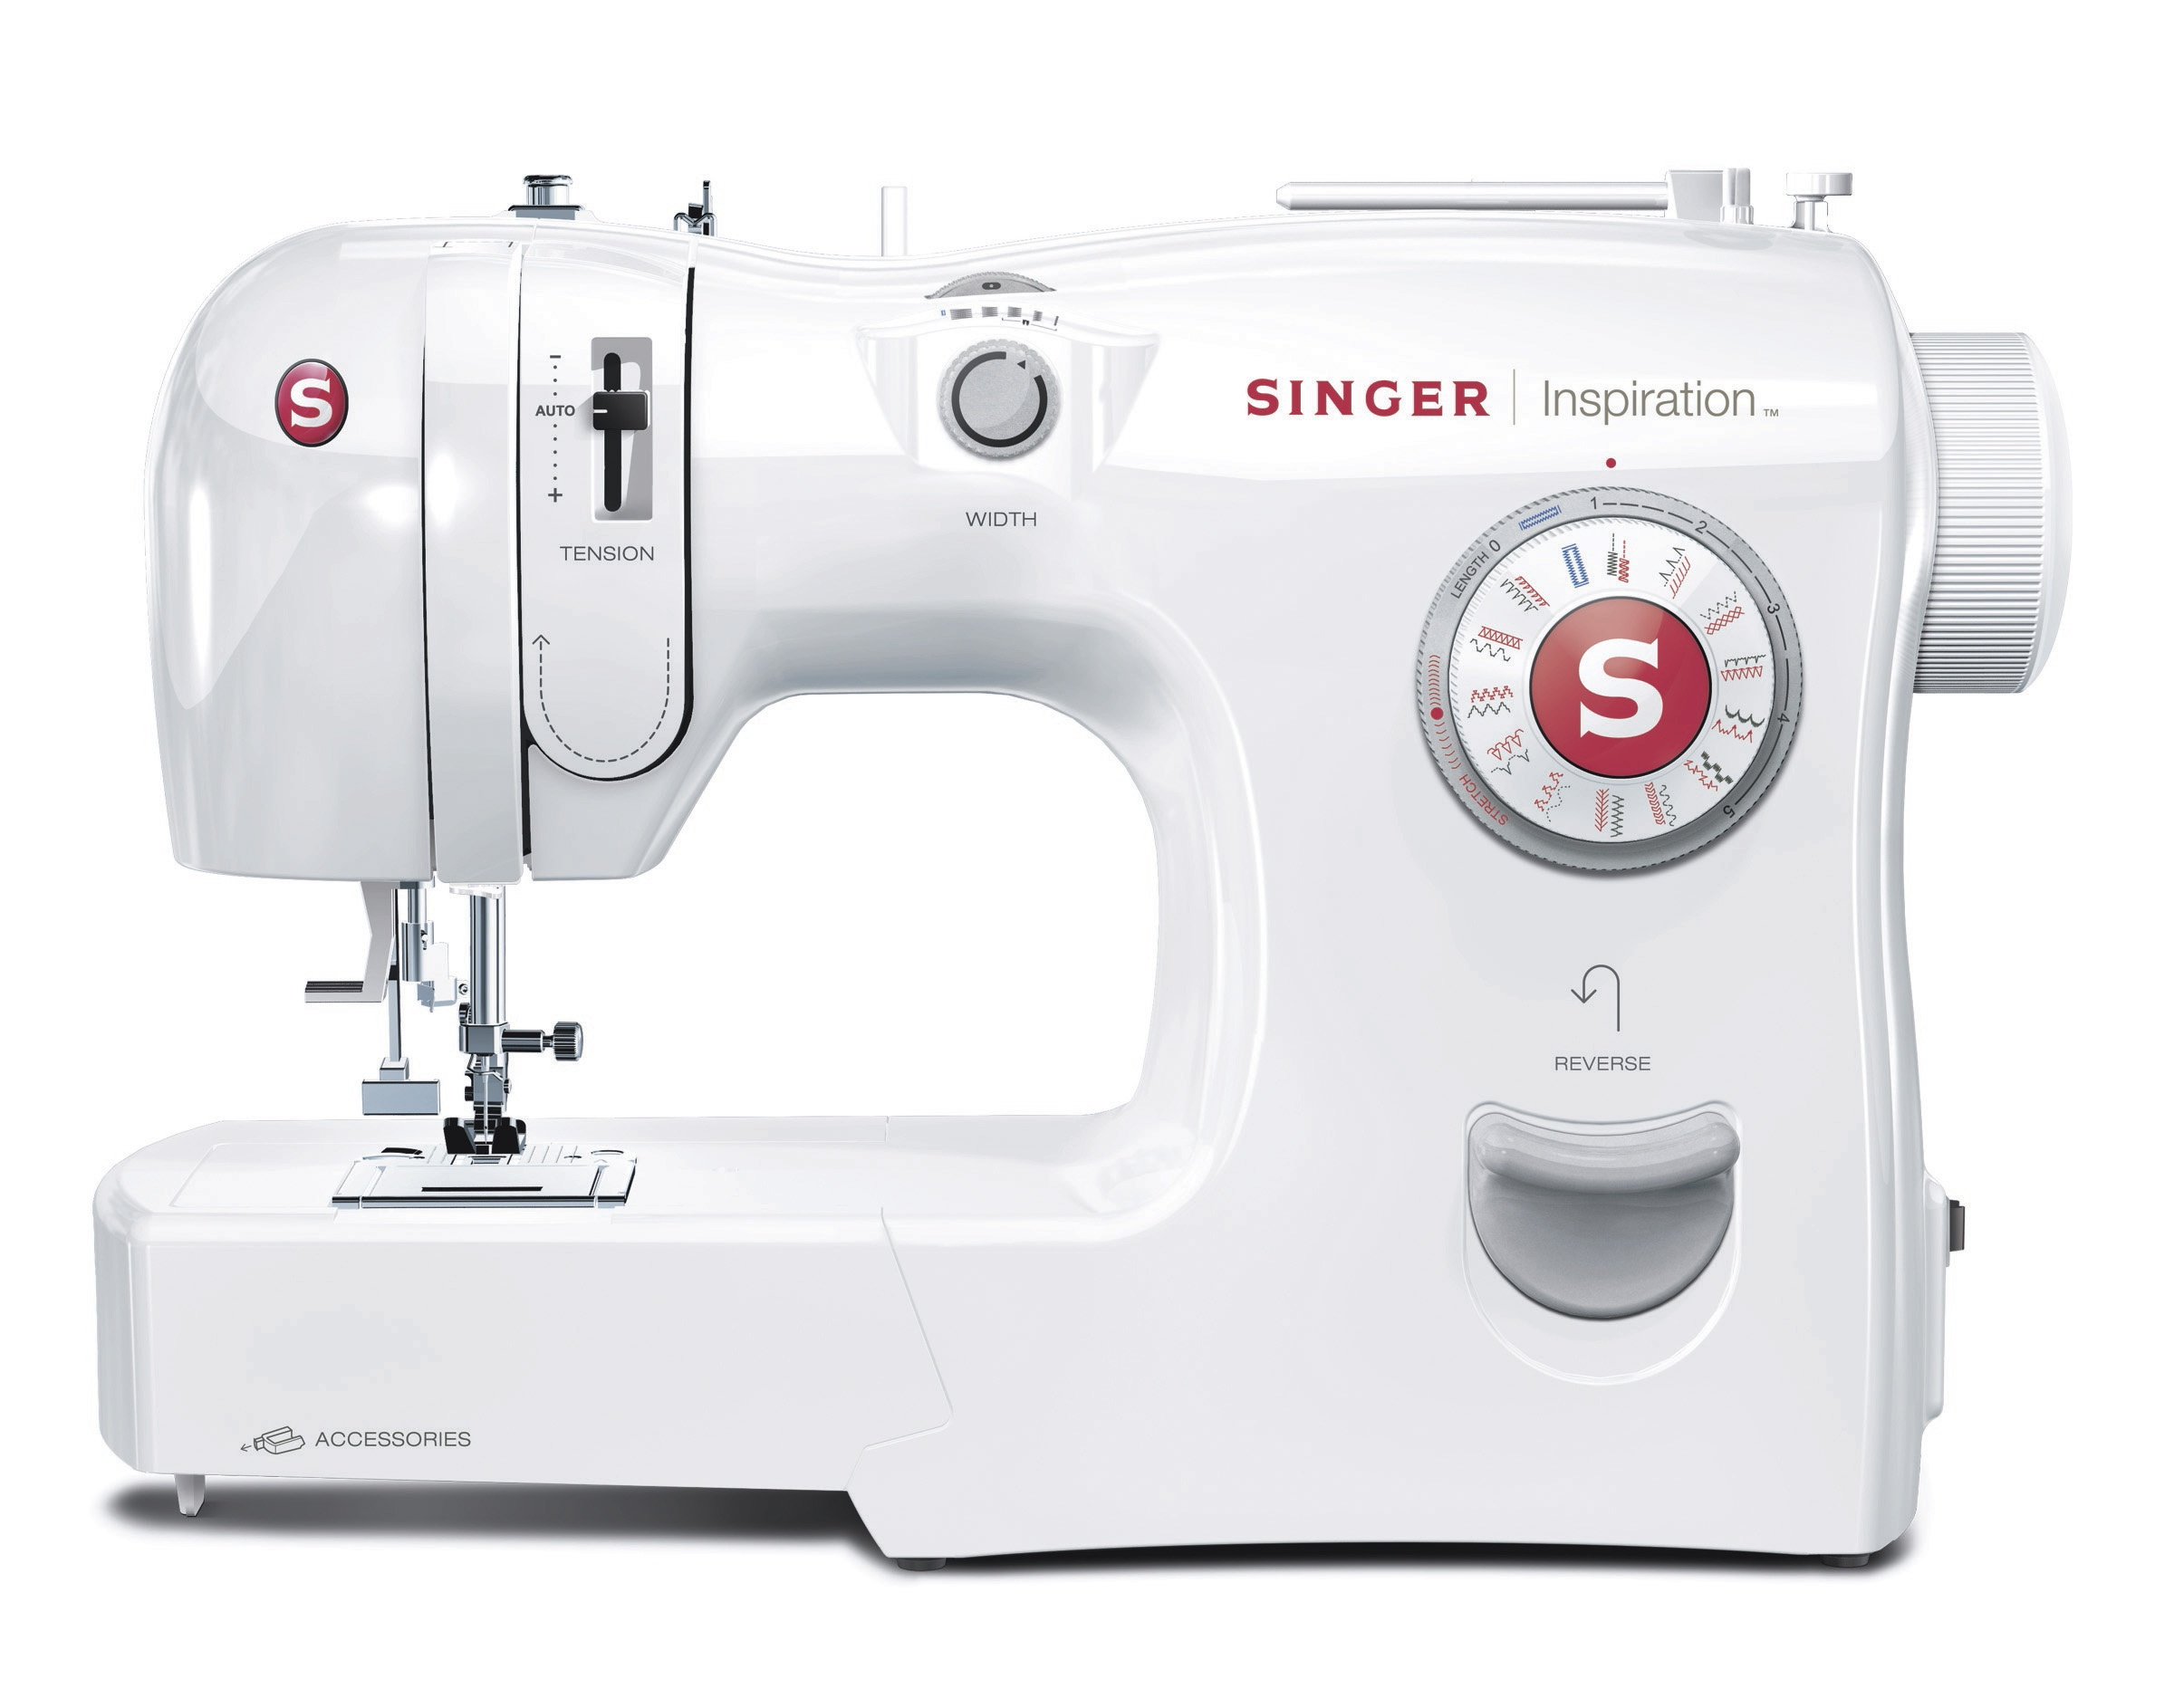 the new singer inspiration tm sewing machines simplify sewing for beginners new sewers help. Black Bedroom Furniture Sets. Home Design Ideas